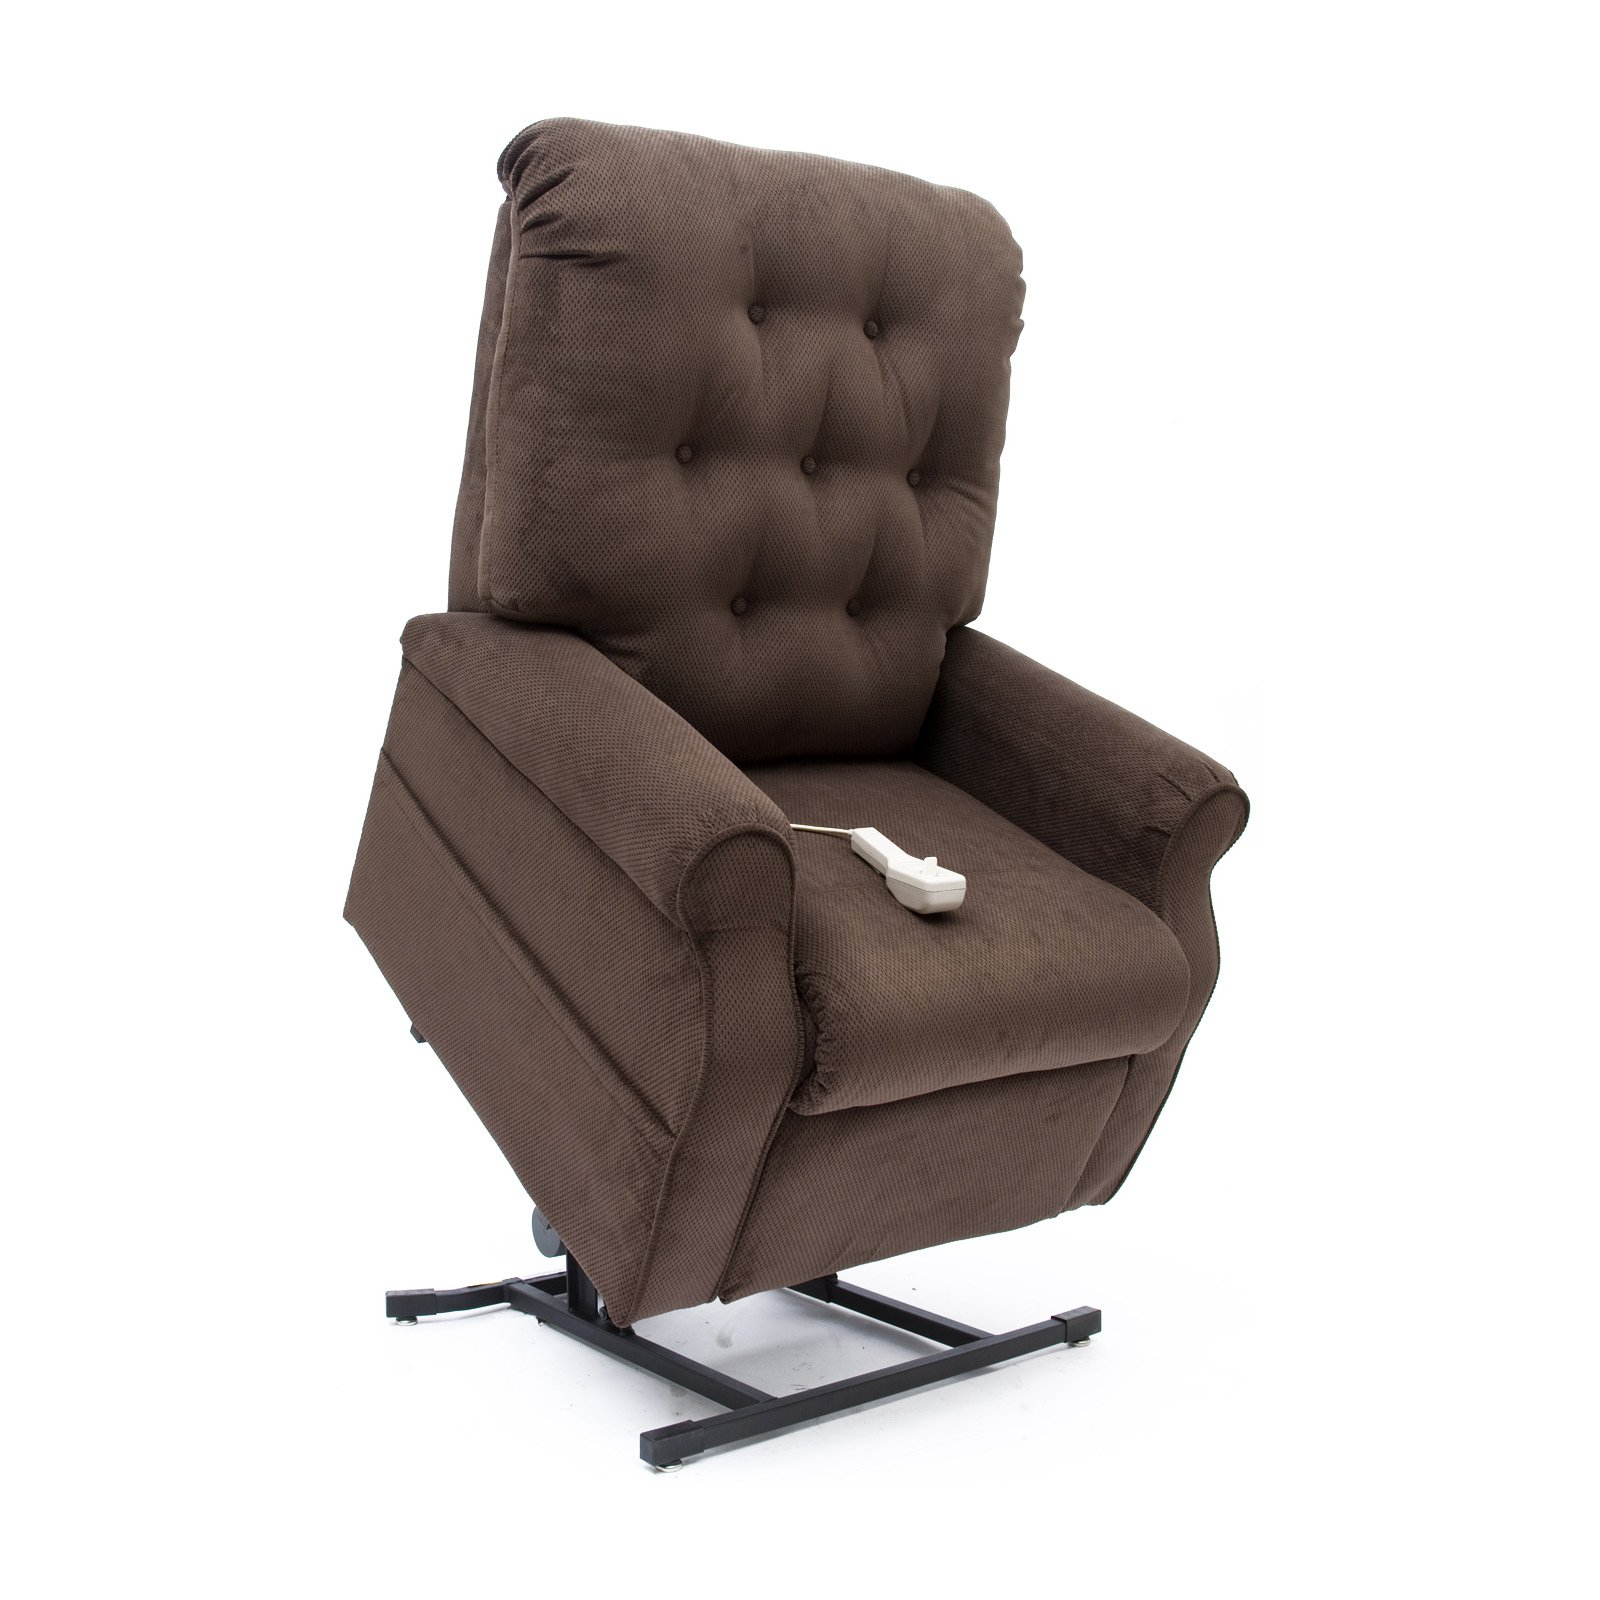 Mega Motion Wayne 3-Position Power Lift Recliner - Chocolate  sc 1 st  Walmart & Mega Motion Wayne 3-Position Power Lift Recliner - Chocolate ... islam-shia.org